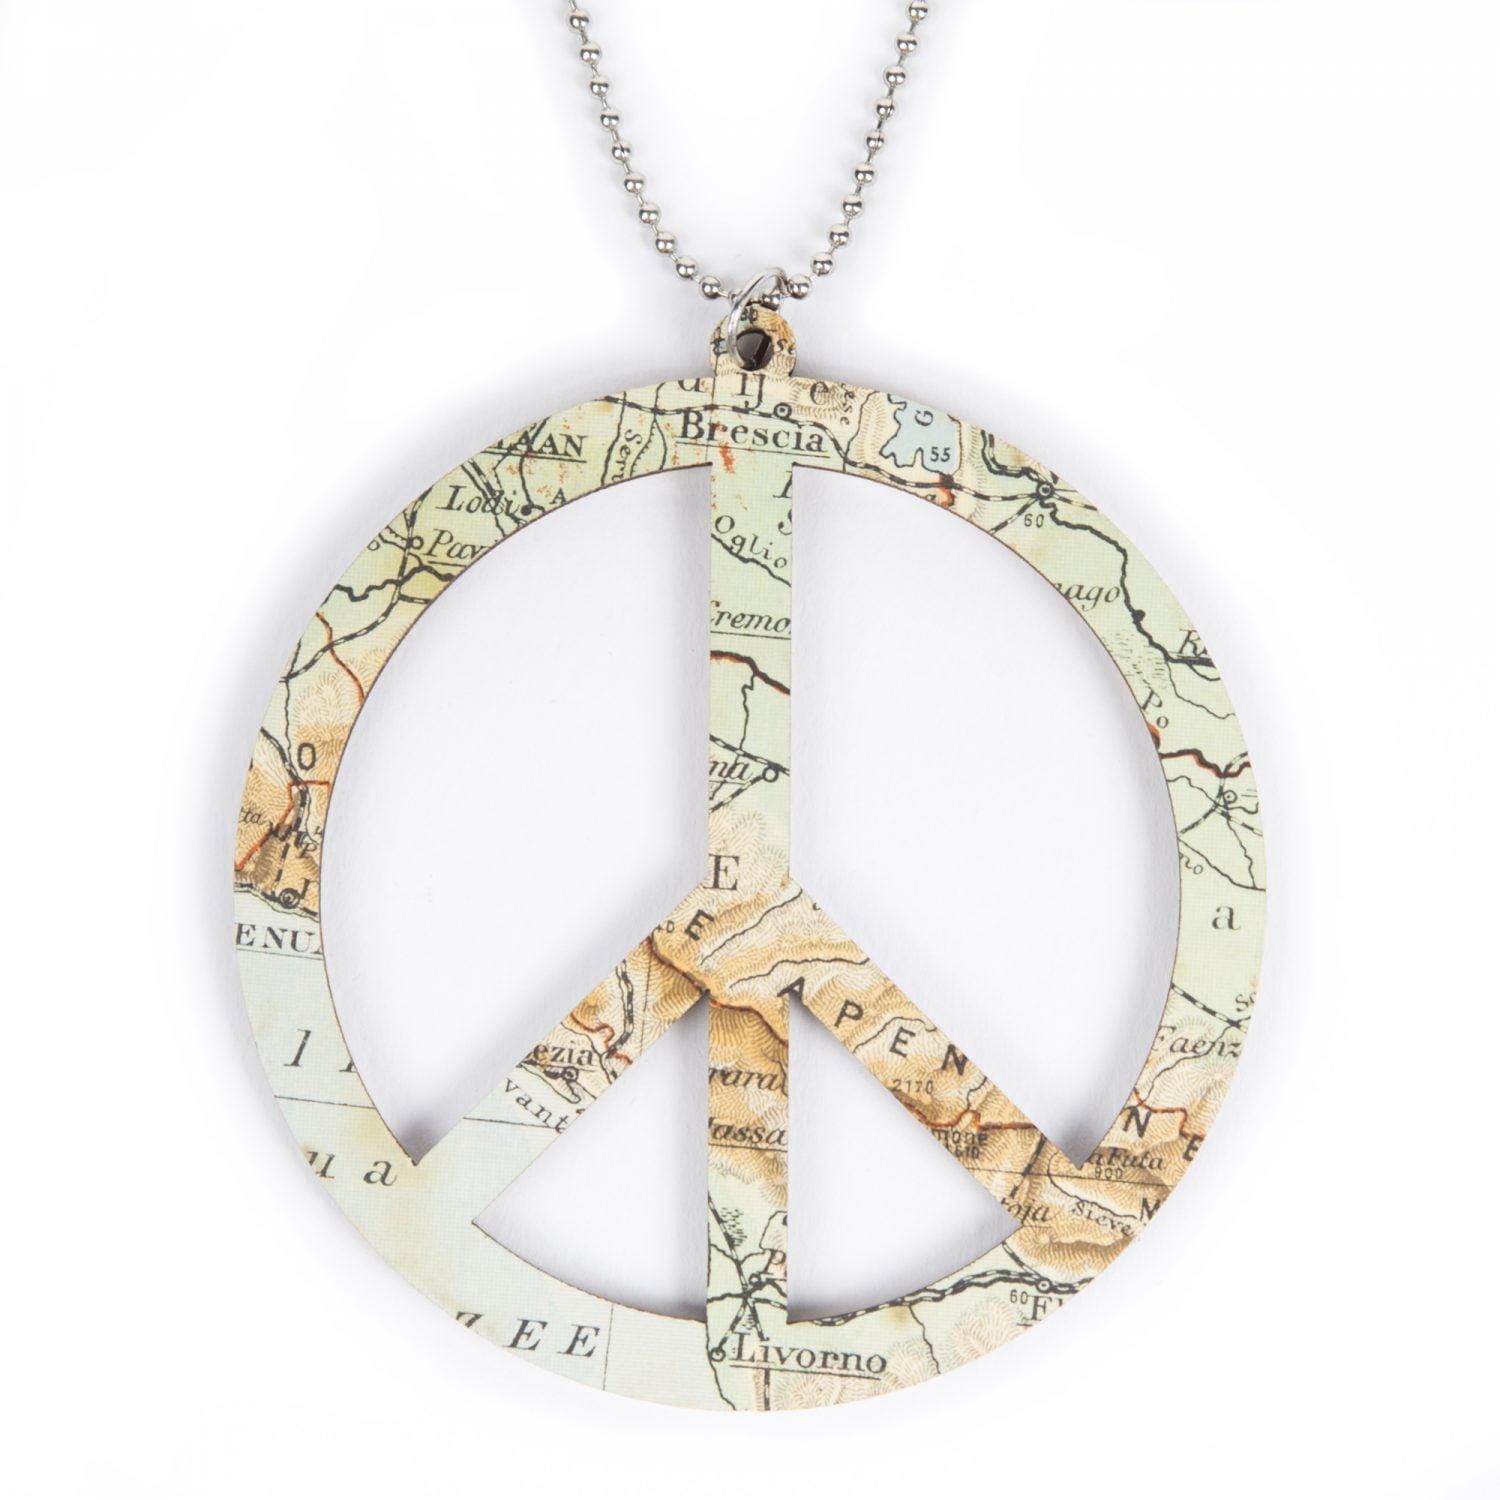 Laser cut wooden necklace / pendant world peace - Lasercut wooden necklace / pendant world peace